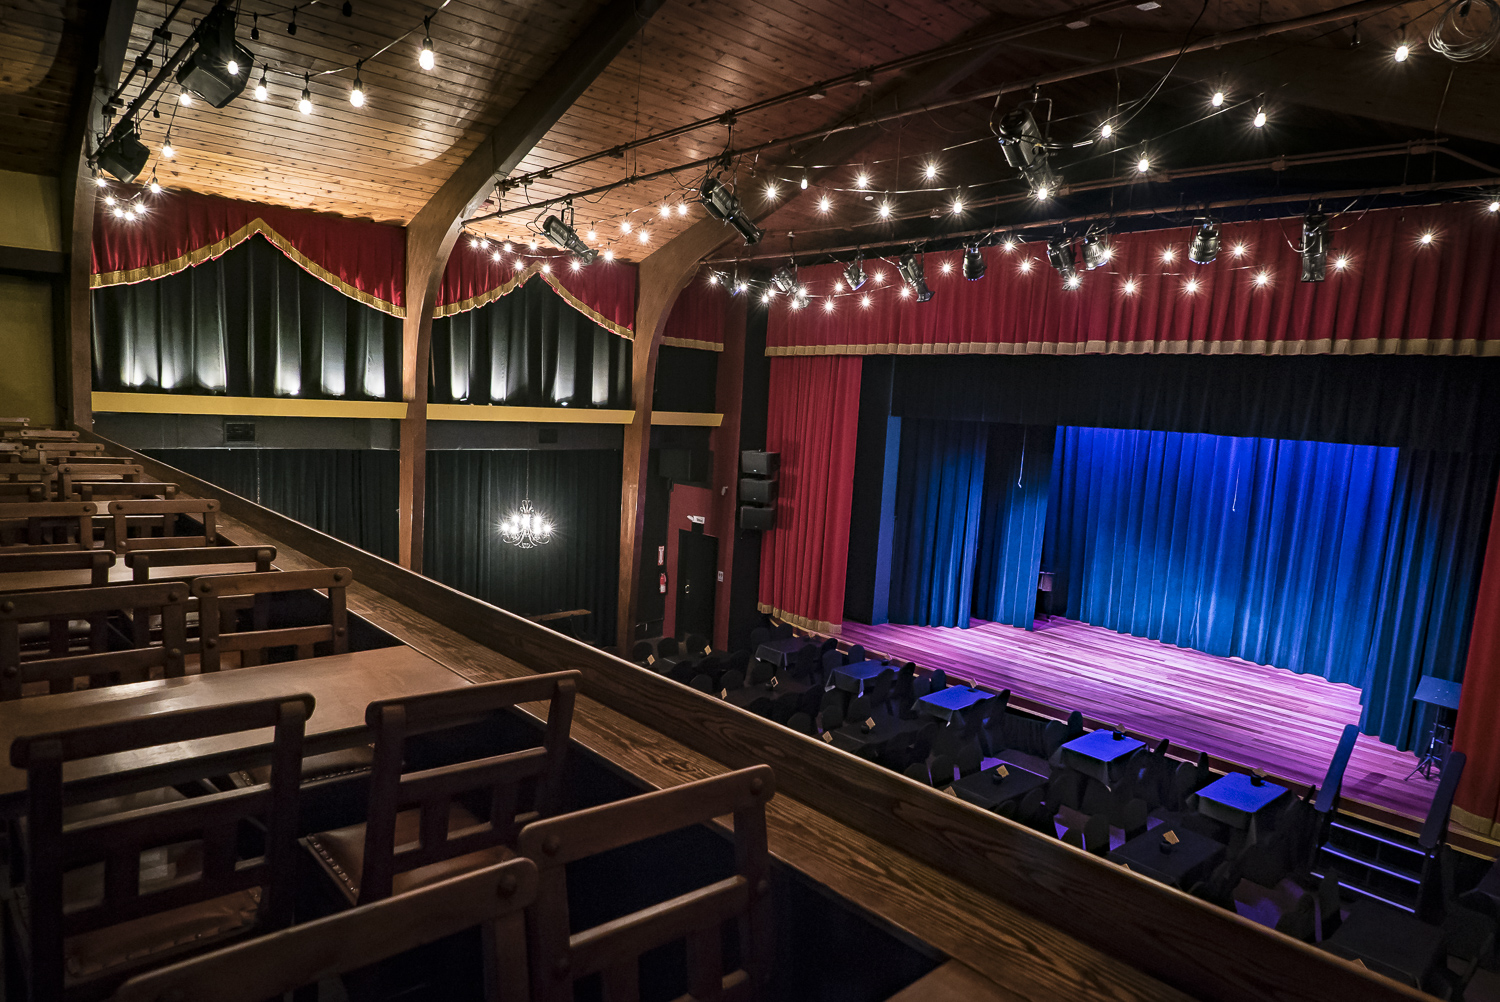 Key West Theater balcony seating